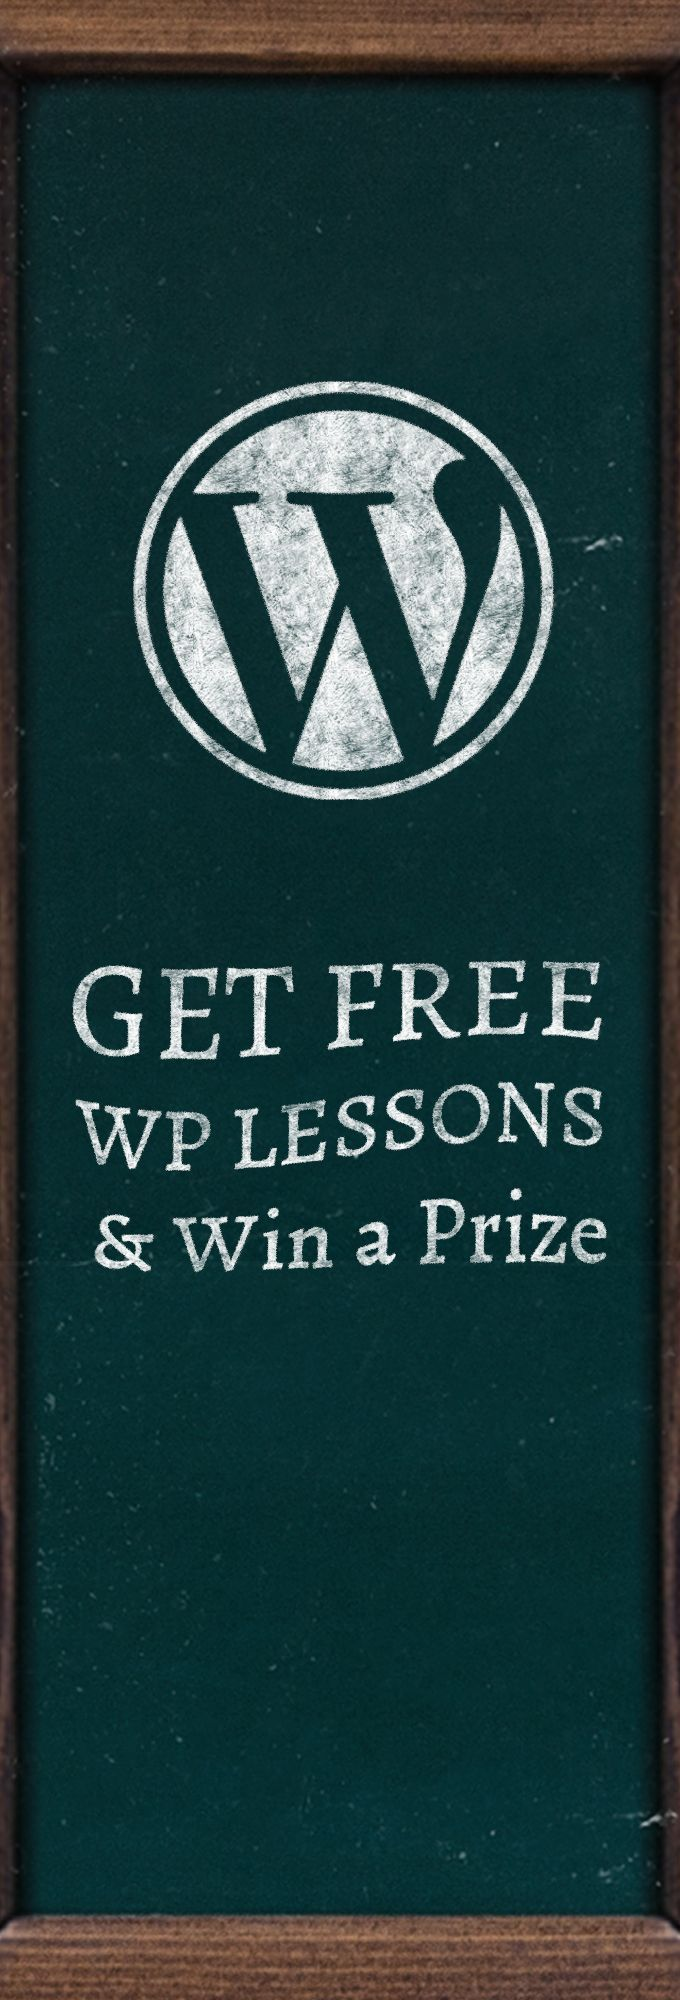 Subscribe for FREE WordPress Lessons & Win a Template and Free Web Hosting! This Lucky Day for Somebody is December, 28.  Hurry Up and Subscribe! http://www.templatemonster.com/website-5-days.php?utm_source=pinterest&utm_medium=tm&utm_campaign=wpsub